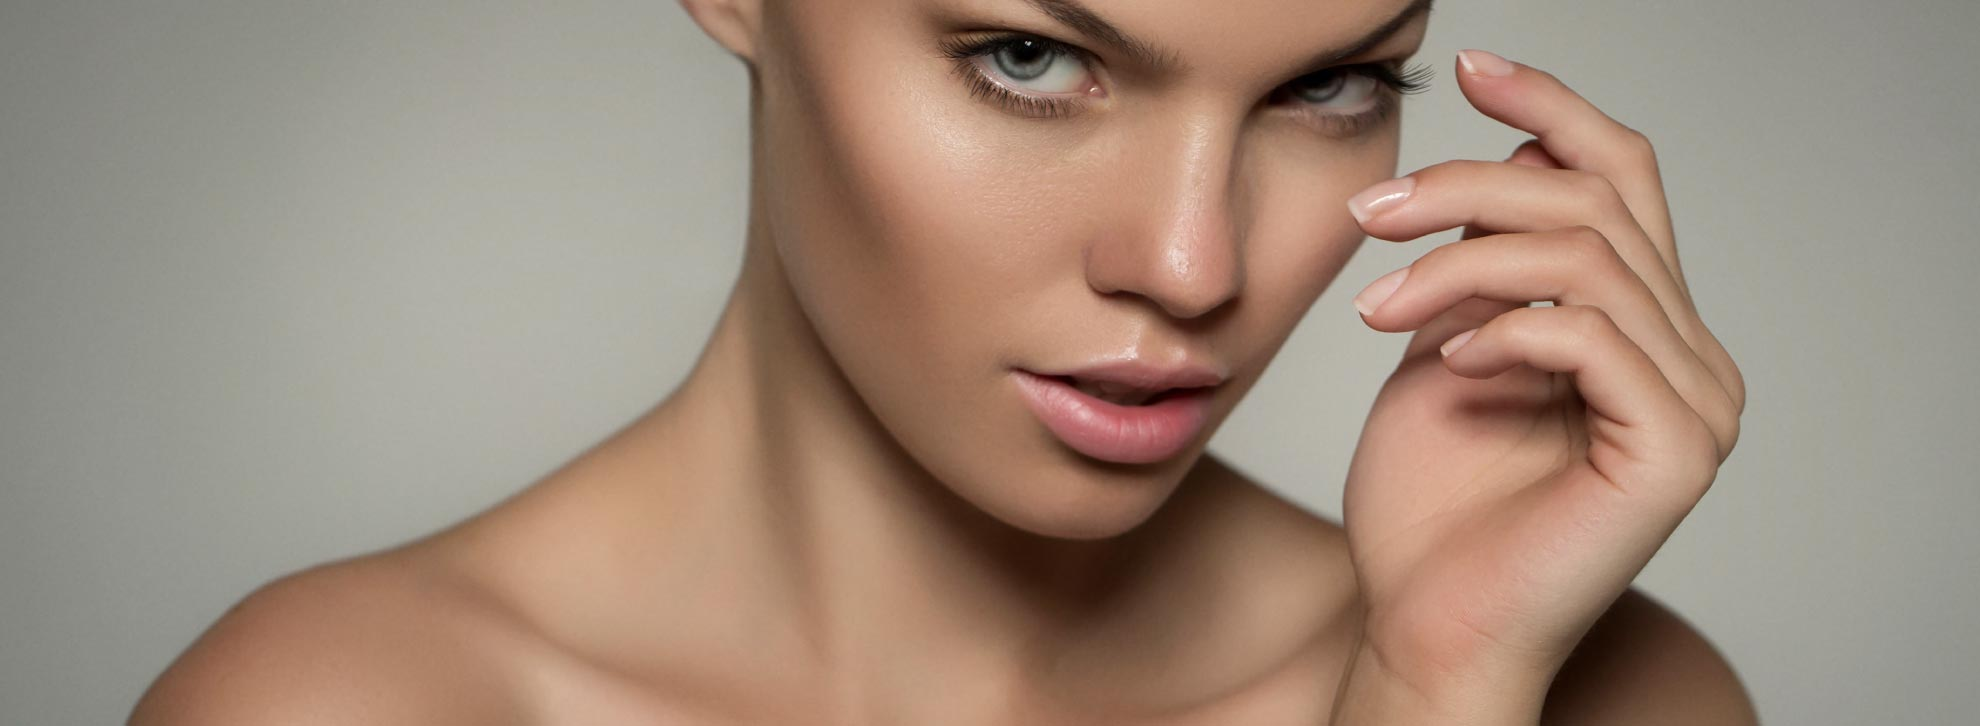 Cosmetic Surgery in Liverpool, Merseyside and Warrington, Cheshire